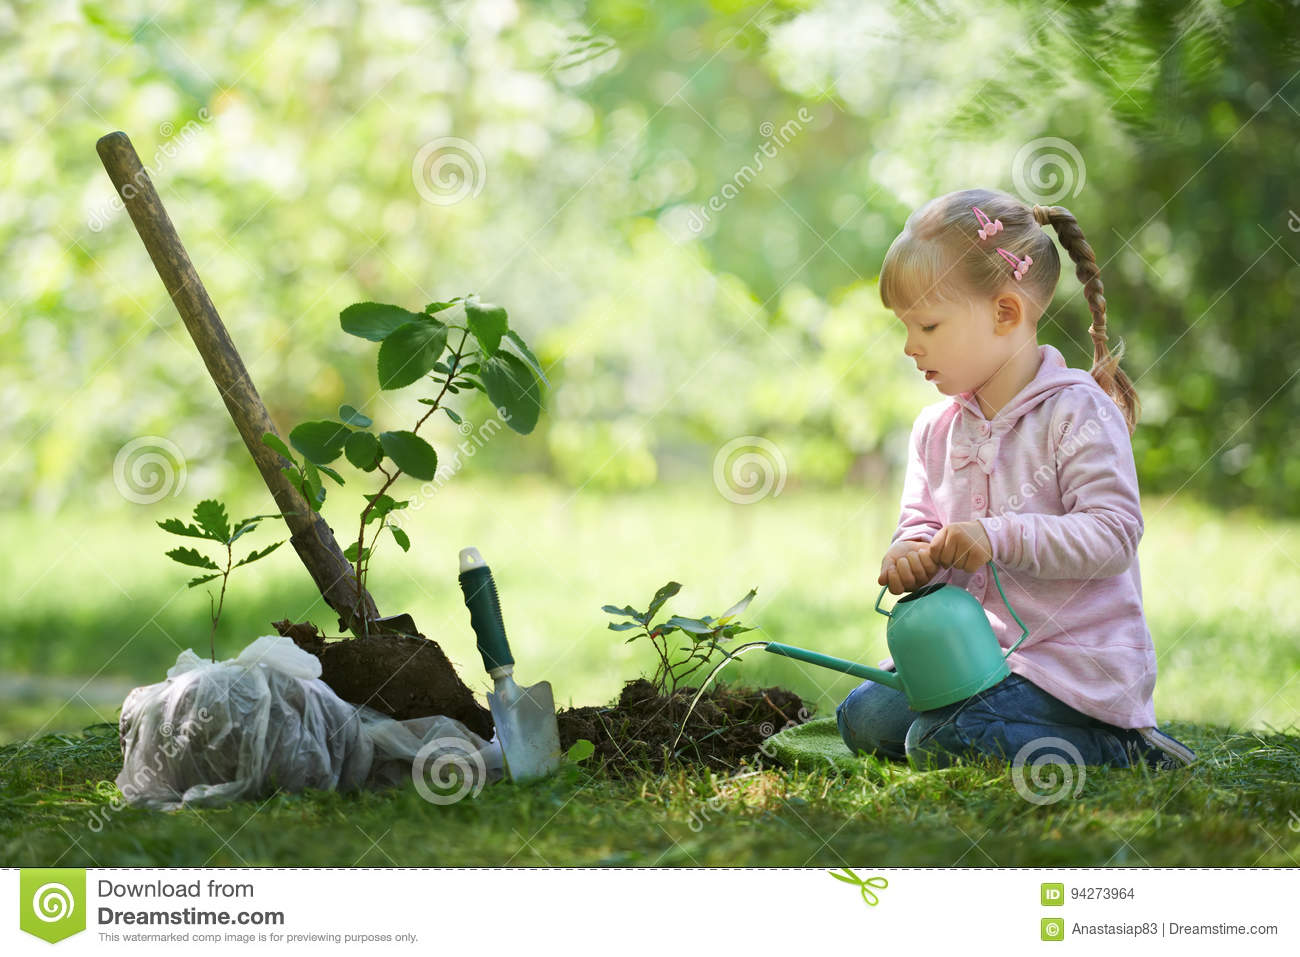 Child watering just planted tree. Children will save the earth